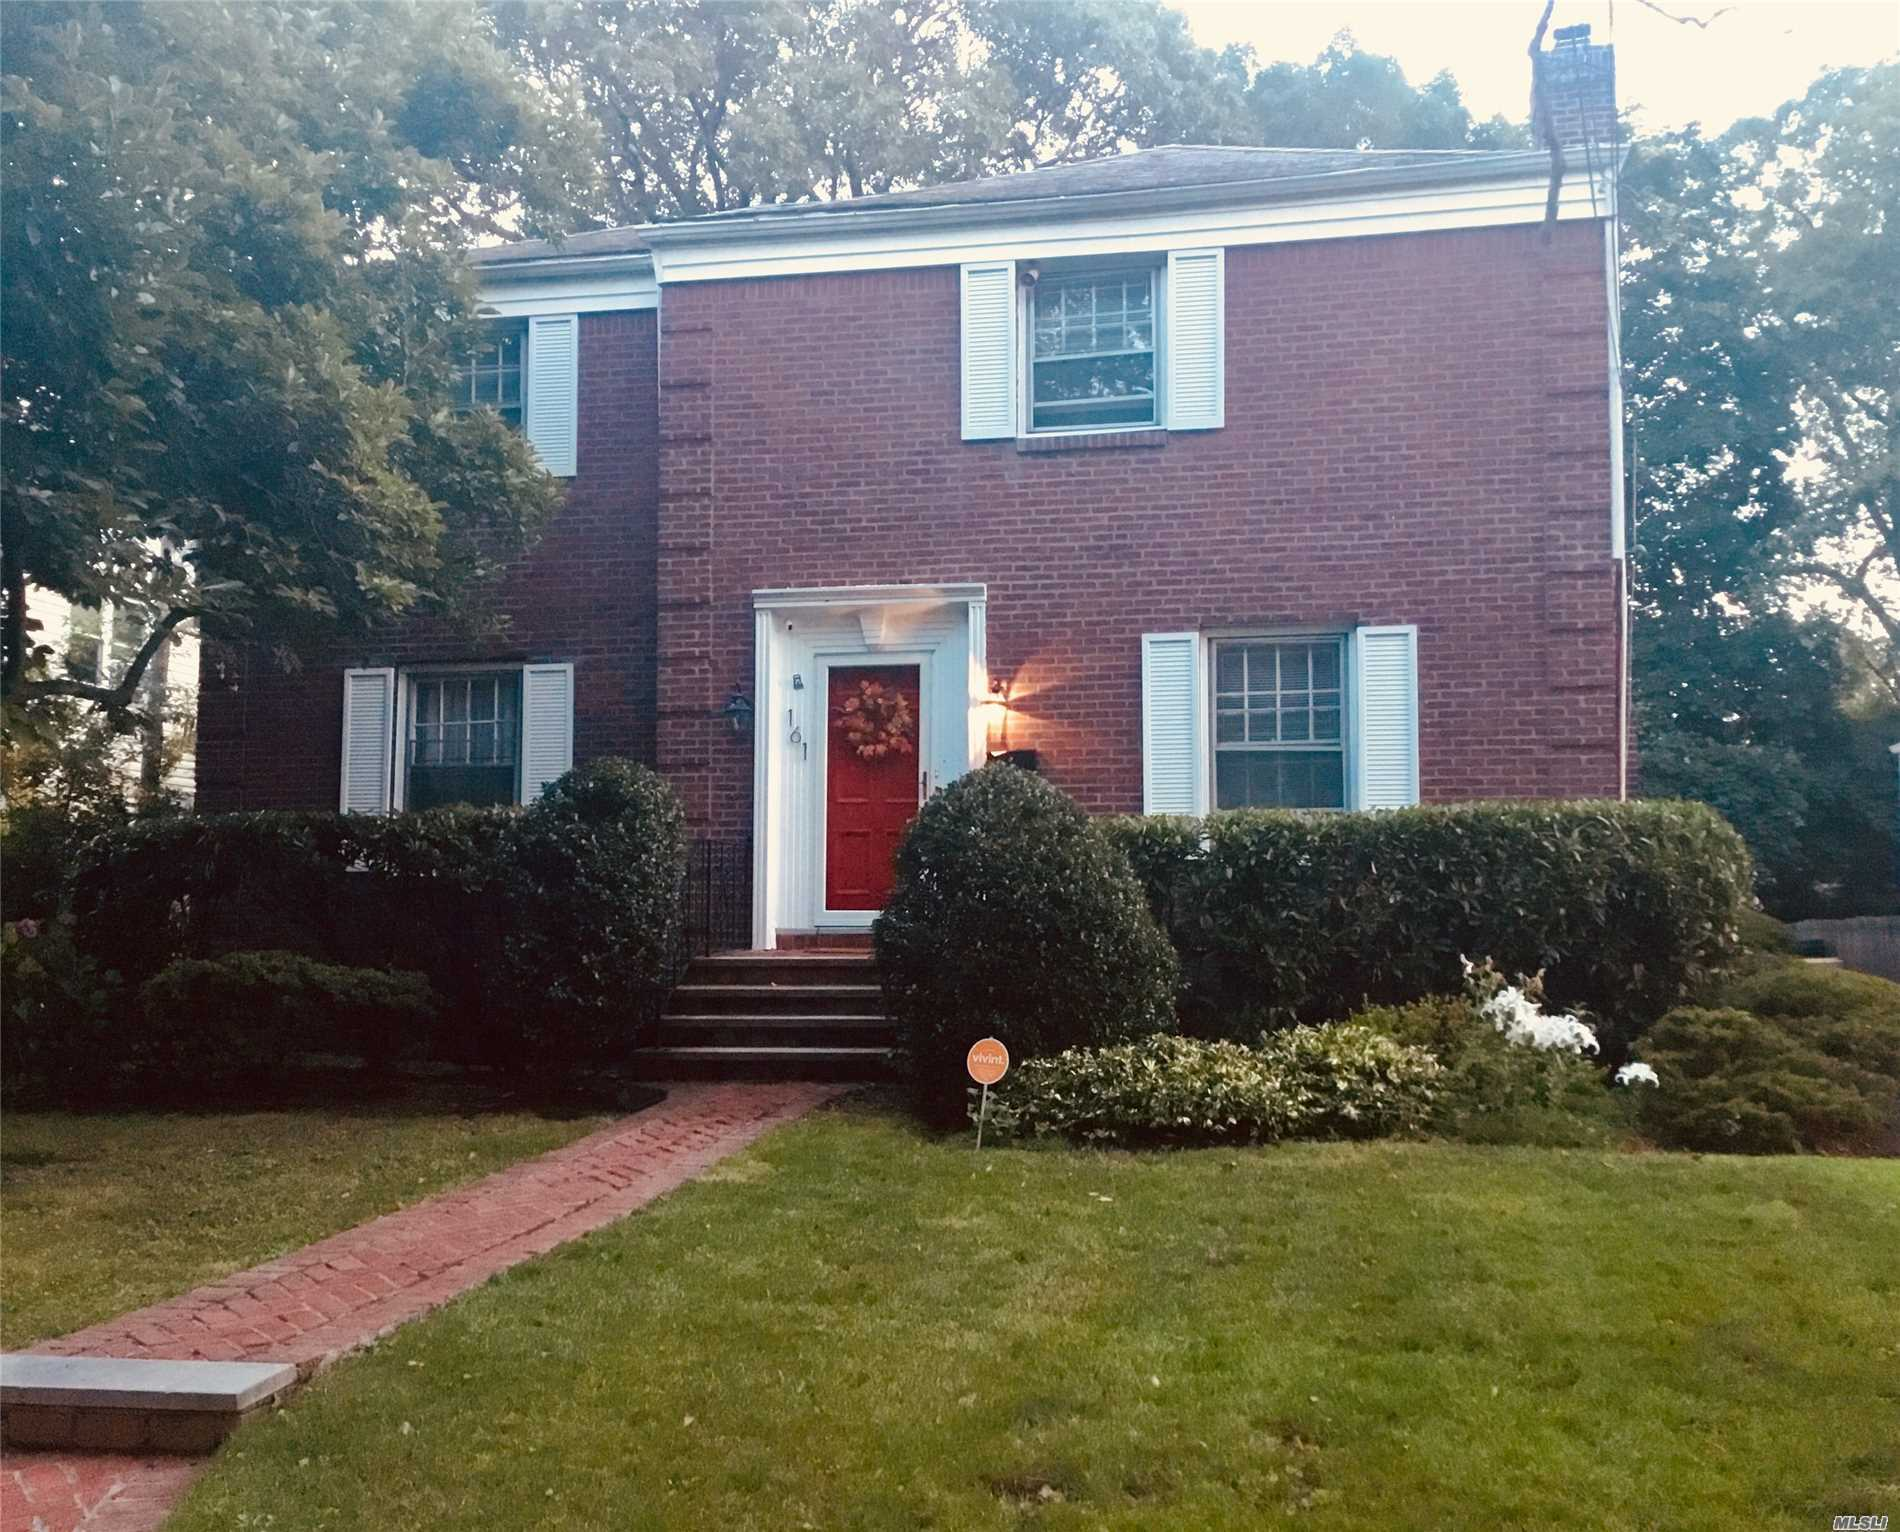 Beautiful Brick Center Hall Colonial On Quiet Tree Lined Street In Hewlett Sd#14.  Home Boasts Spacious Rooms, Wireless Security/Cameras, Newly Stained Hdwd Flrs, Updated Electrical Outlets, New Hi-Hats, New Ss Refrigerator, New Ss 5 Burner Stove, Repointed Chimney & Front Facade Of Home. 3 Large.Bedrooms (Incl Mastersuite/ Walk In Closet), 3 Full Baths, Formal Dr, Lg Entertaining Lr, Family Room, Office, Fin Basement, Pvt Driveway, 1 Car Garage, And More.. Move In Ready!!! Close To All!